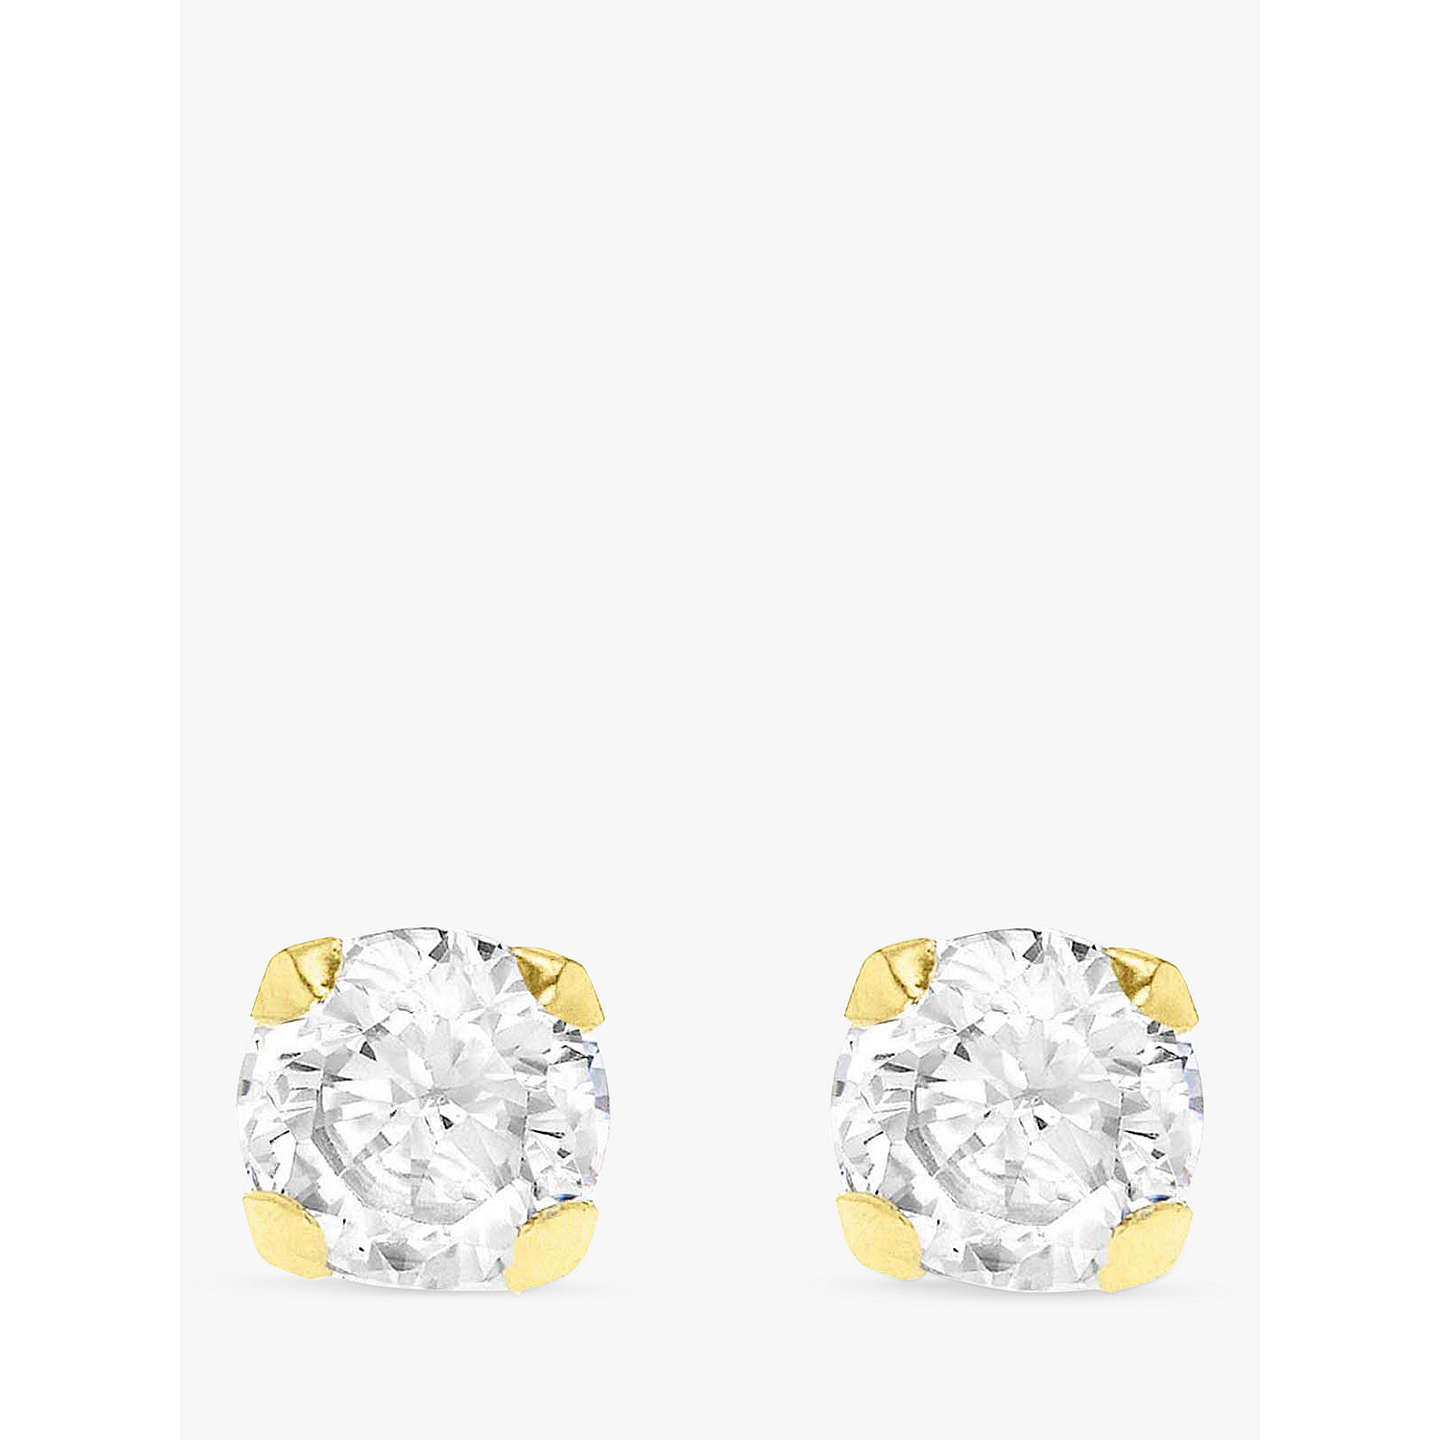 cubic products zirconia yellow lavender gold earrings stud round cz birthstone